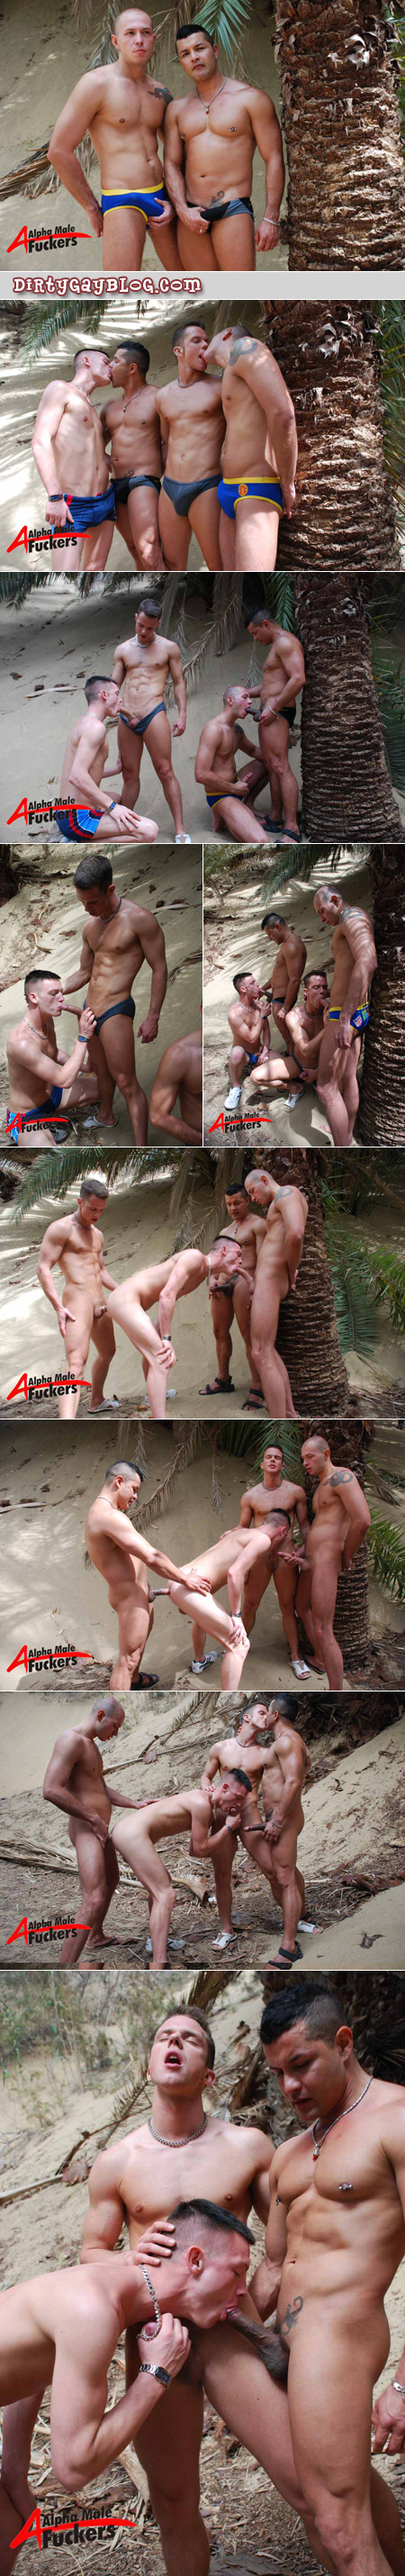 Four young guys in Speedos with big bulges have anonymous group sex on the beach together.